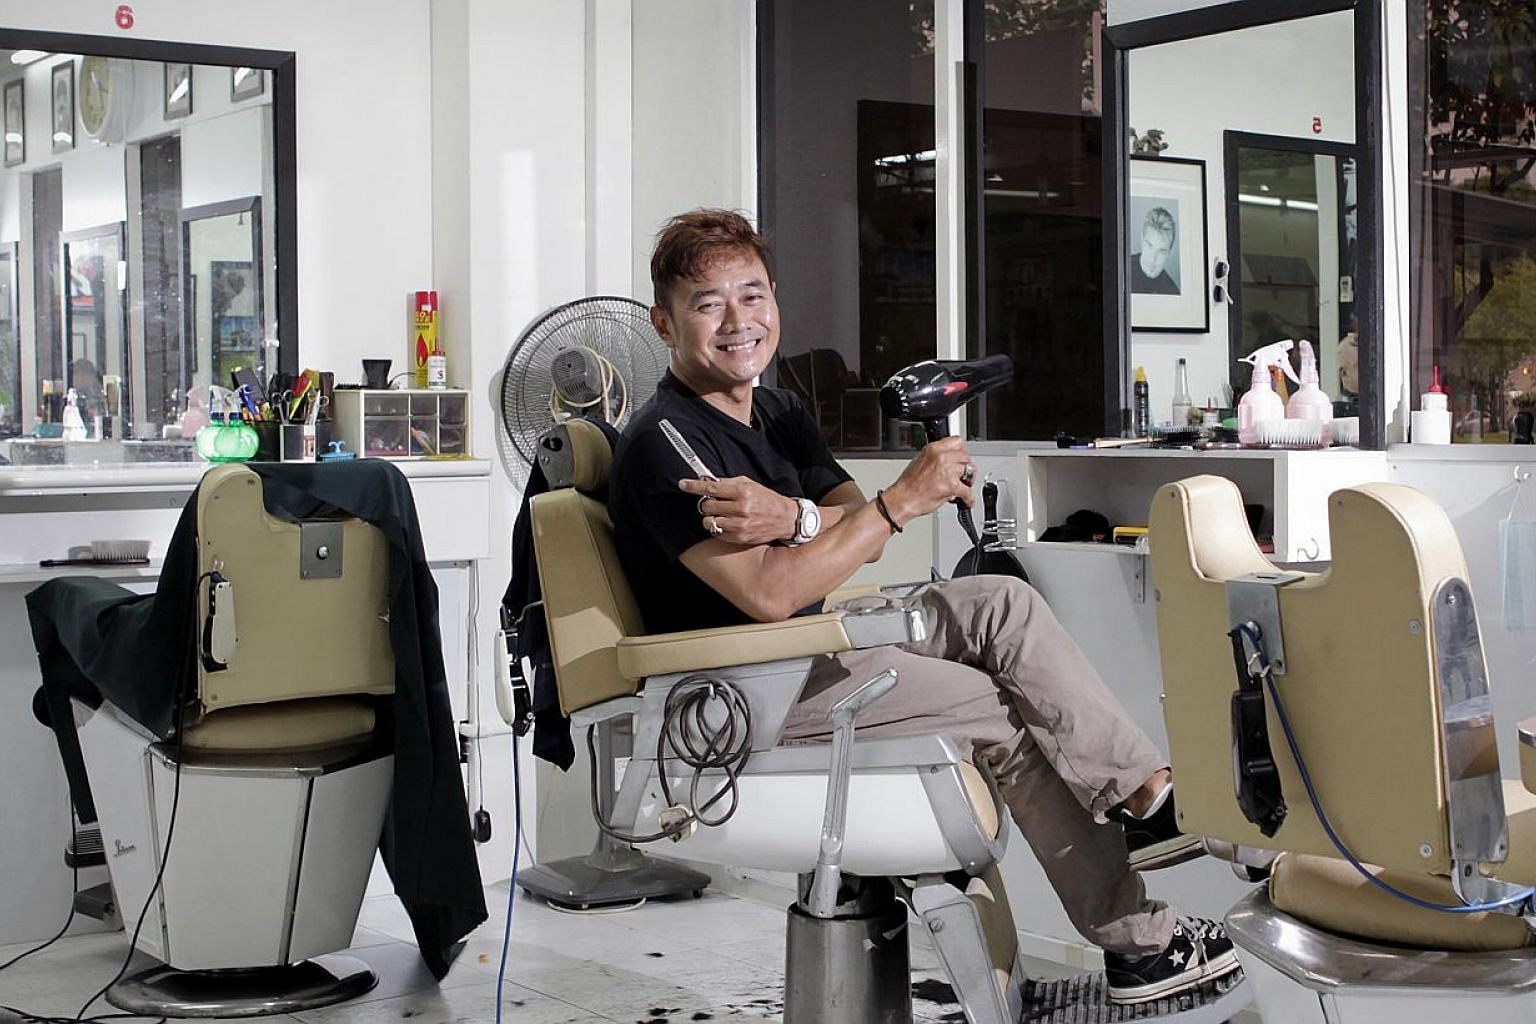 Mr Juffri Hanan, a Malay barber who owns a shop at Rivervale Plaza in Sengkang, goes to various secondary schools to cut students' hair on the request of their discipline masters. -- ST PHOTO: NEO XIAOBIN